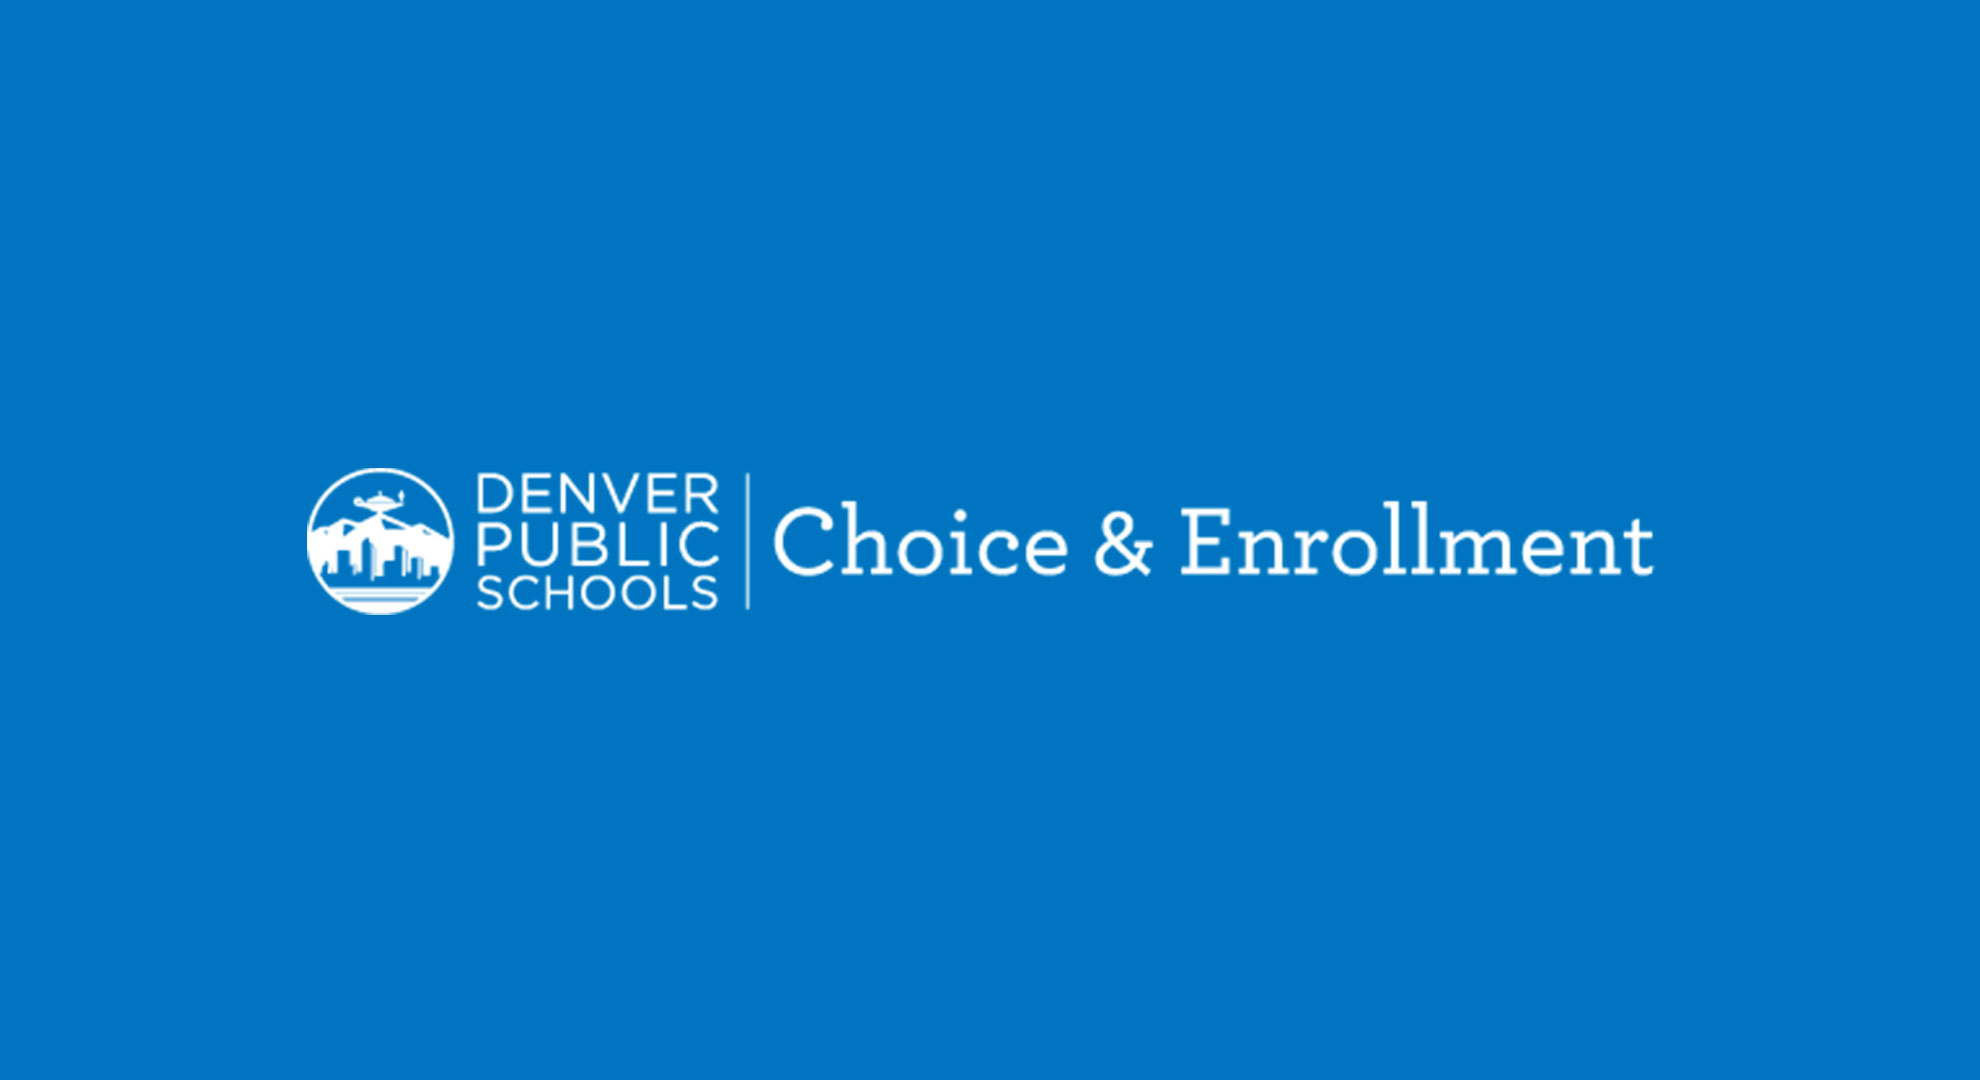 Denver Public School Choice and Enrollment